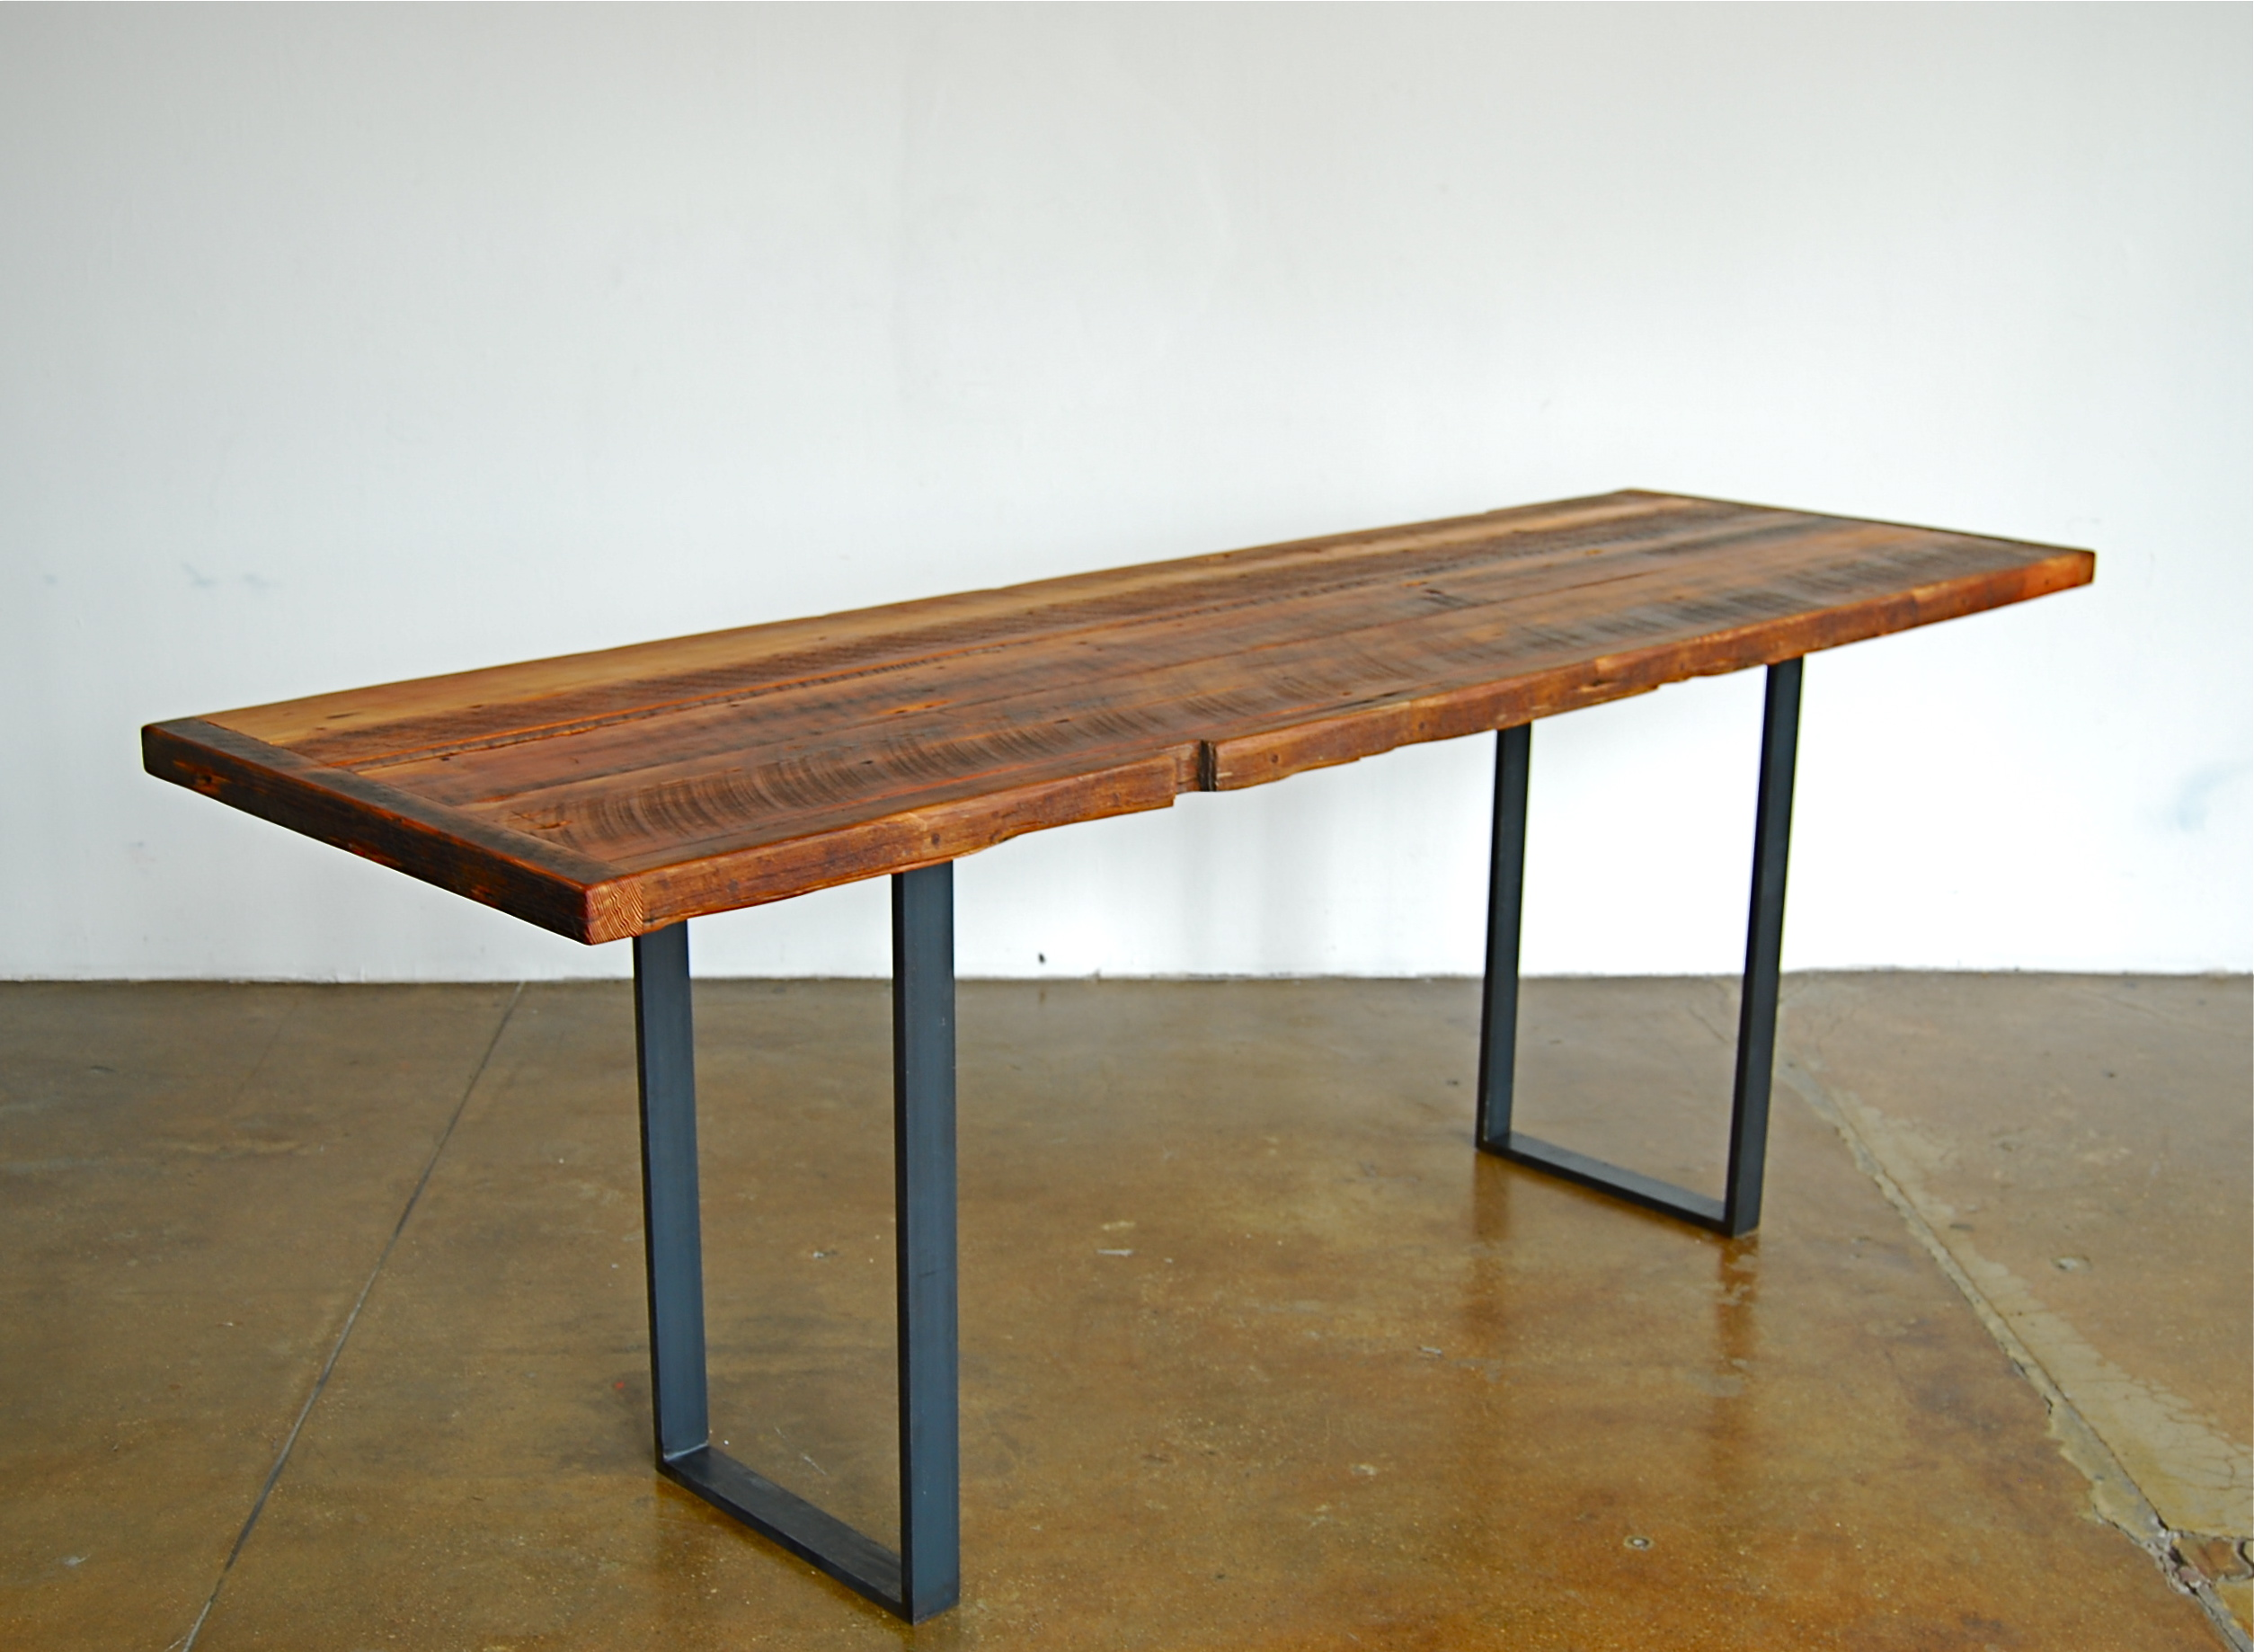 Long Skinny Dining Tables Dwelling Dining Tables On Pinterest Wood Dining Tables